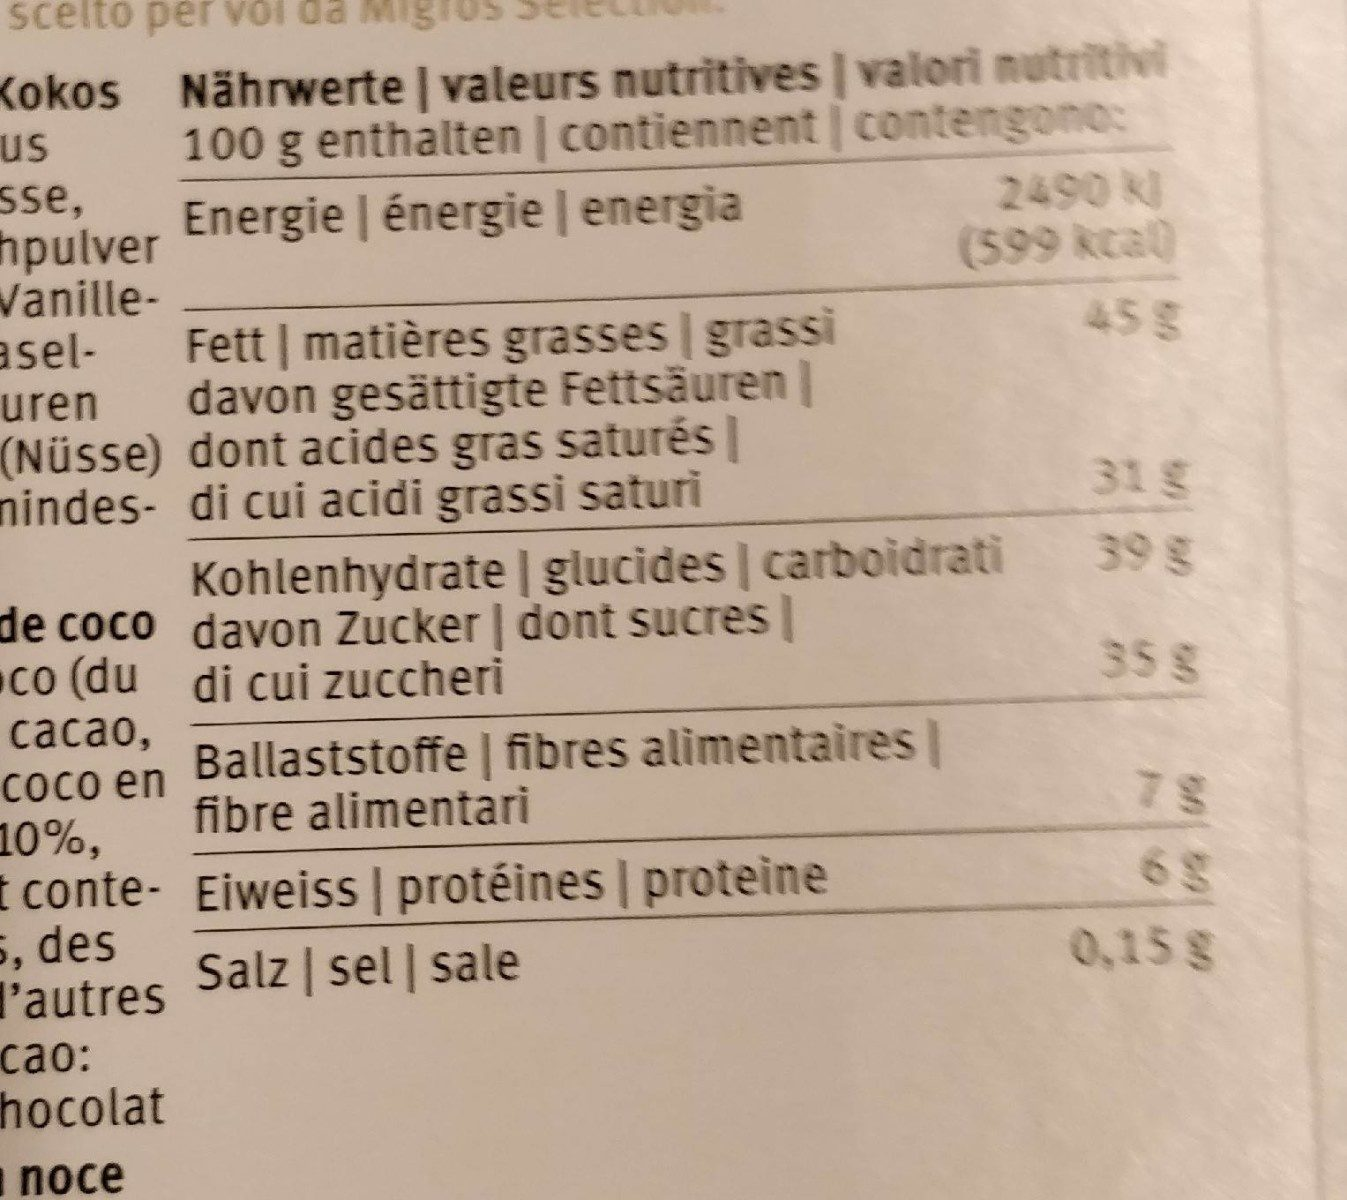 Migros Sélection - Nutrition facts